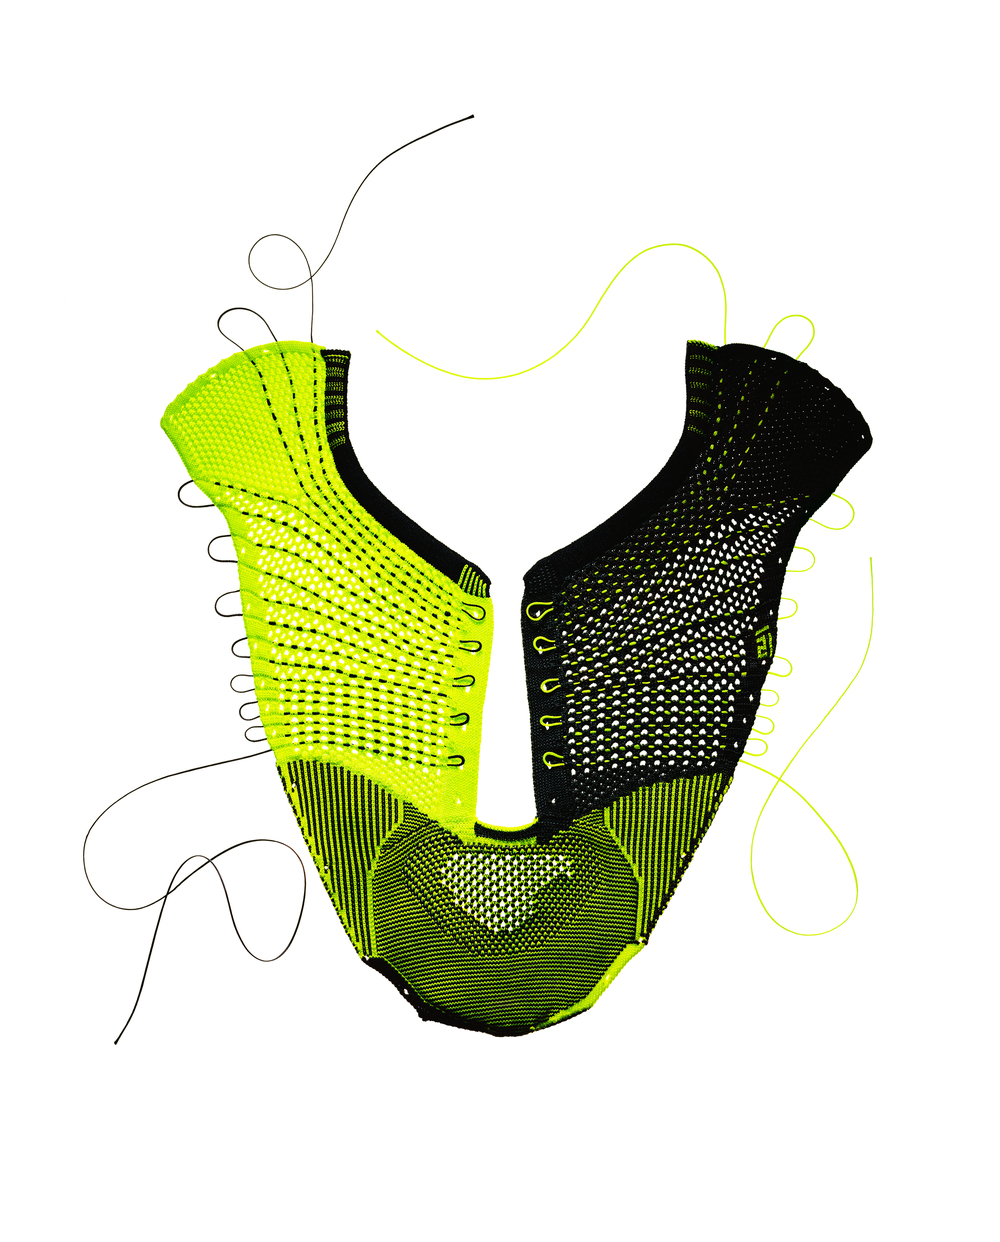 Nike FlyKnit Technology (Source:  nike.com )